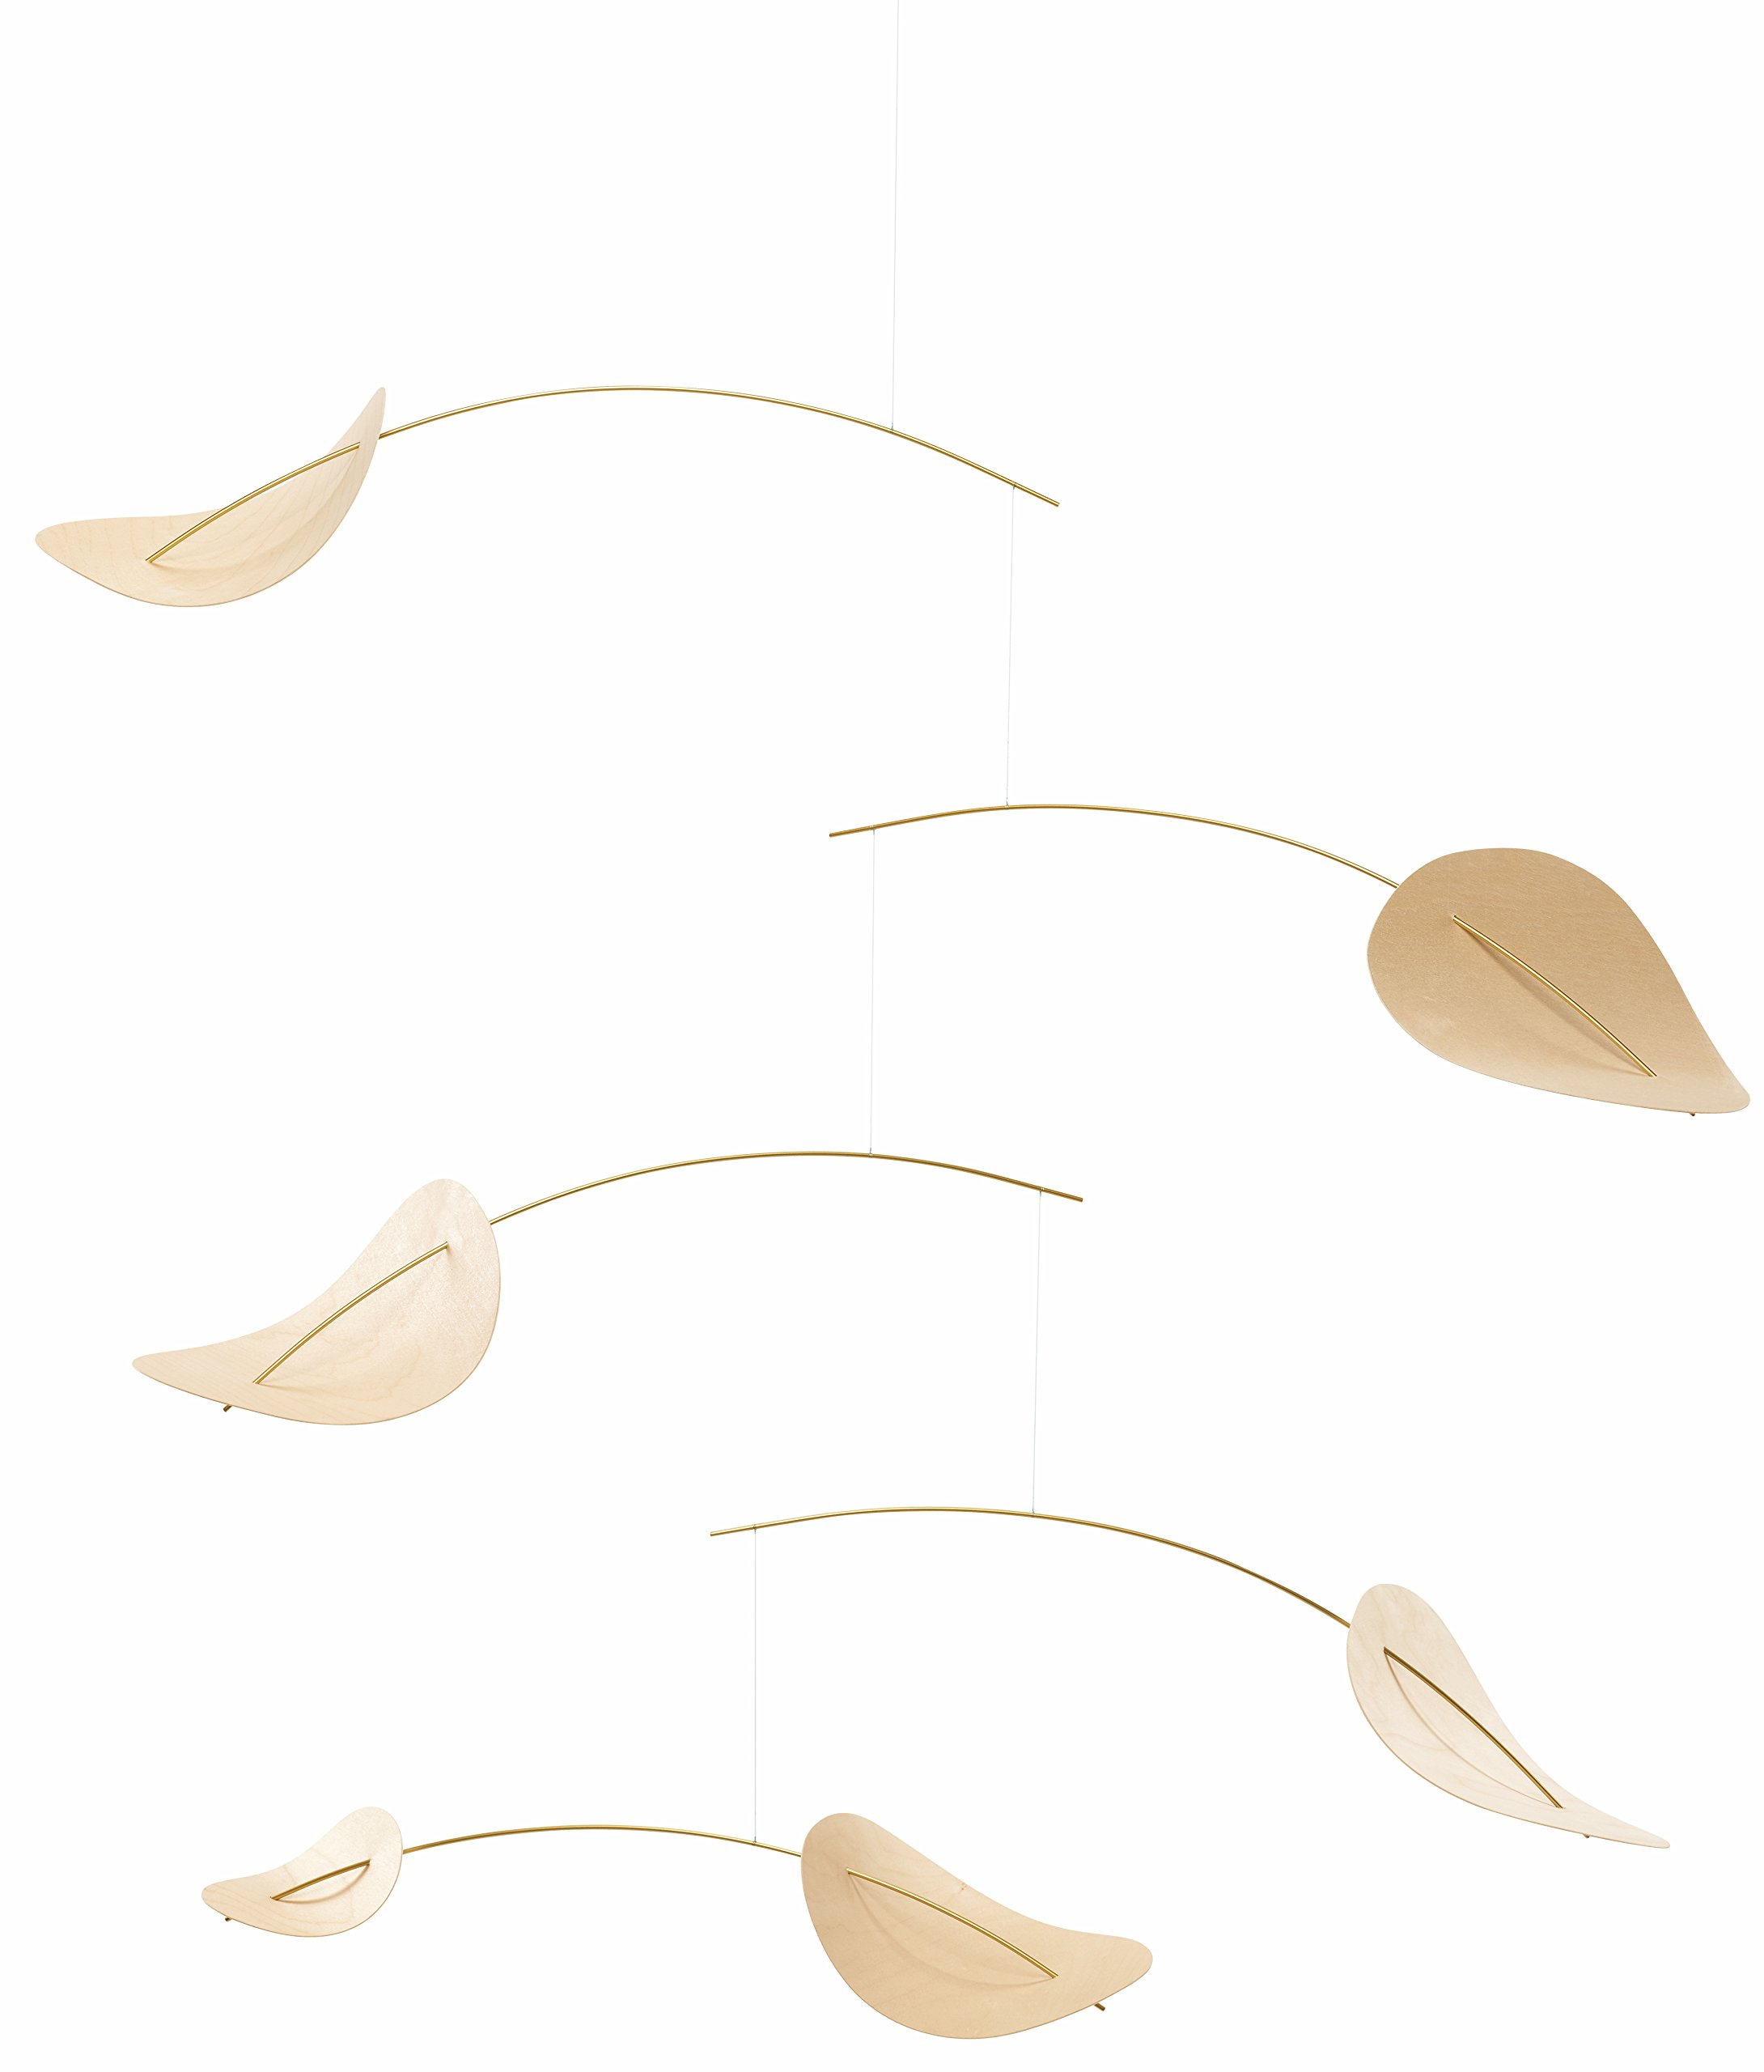 Drifting Clouds Hanging Mobile - 39 Inches - Beech Wood and Steel - Handmade in Denmark by Flensted